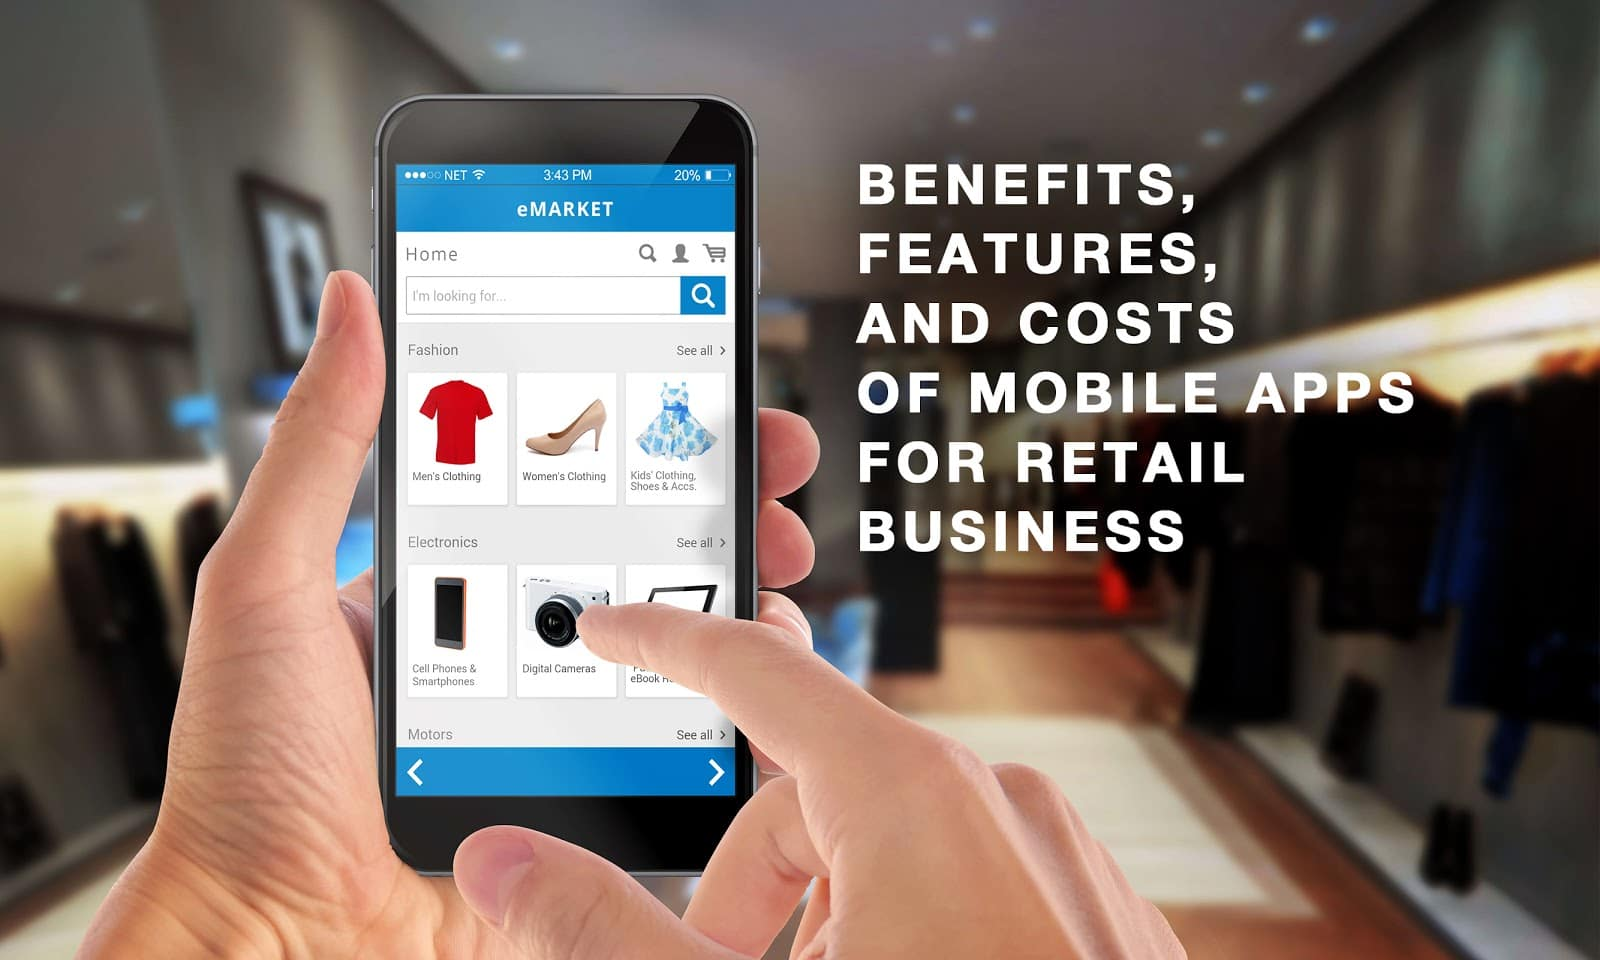 Mobile Apps for Retail Business - Benefits, Features and Costs